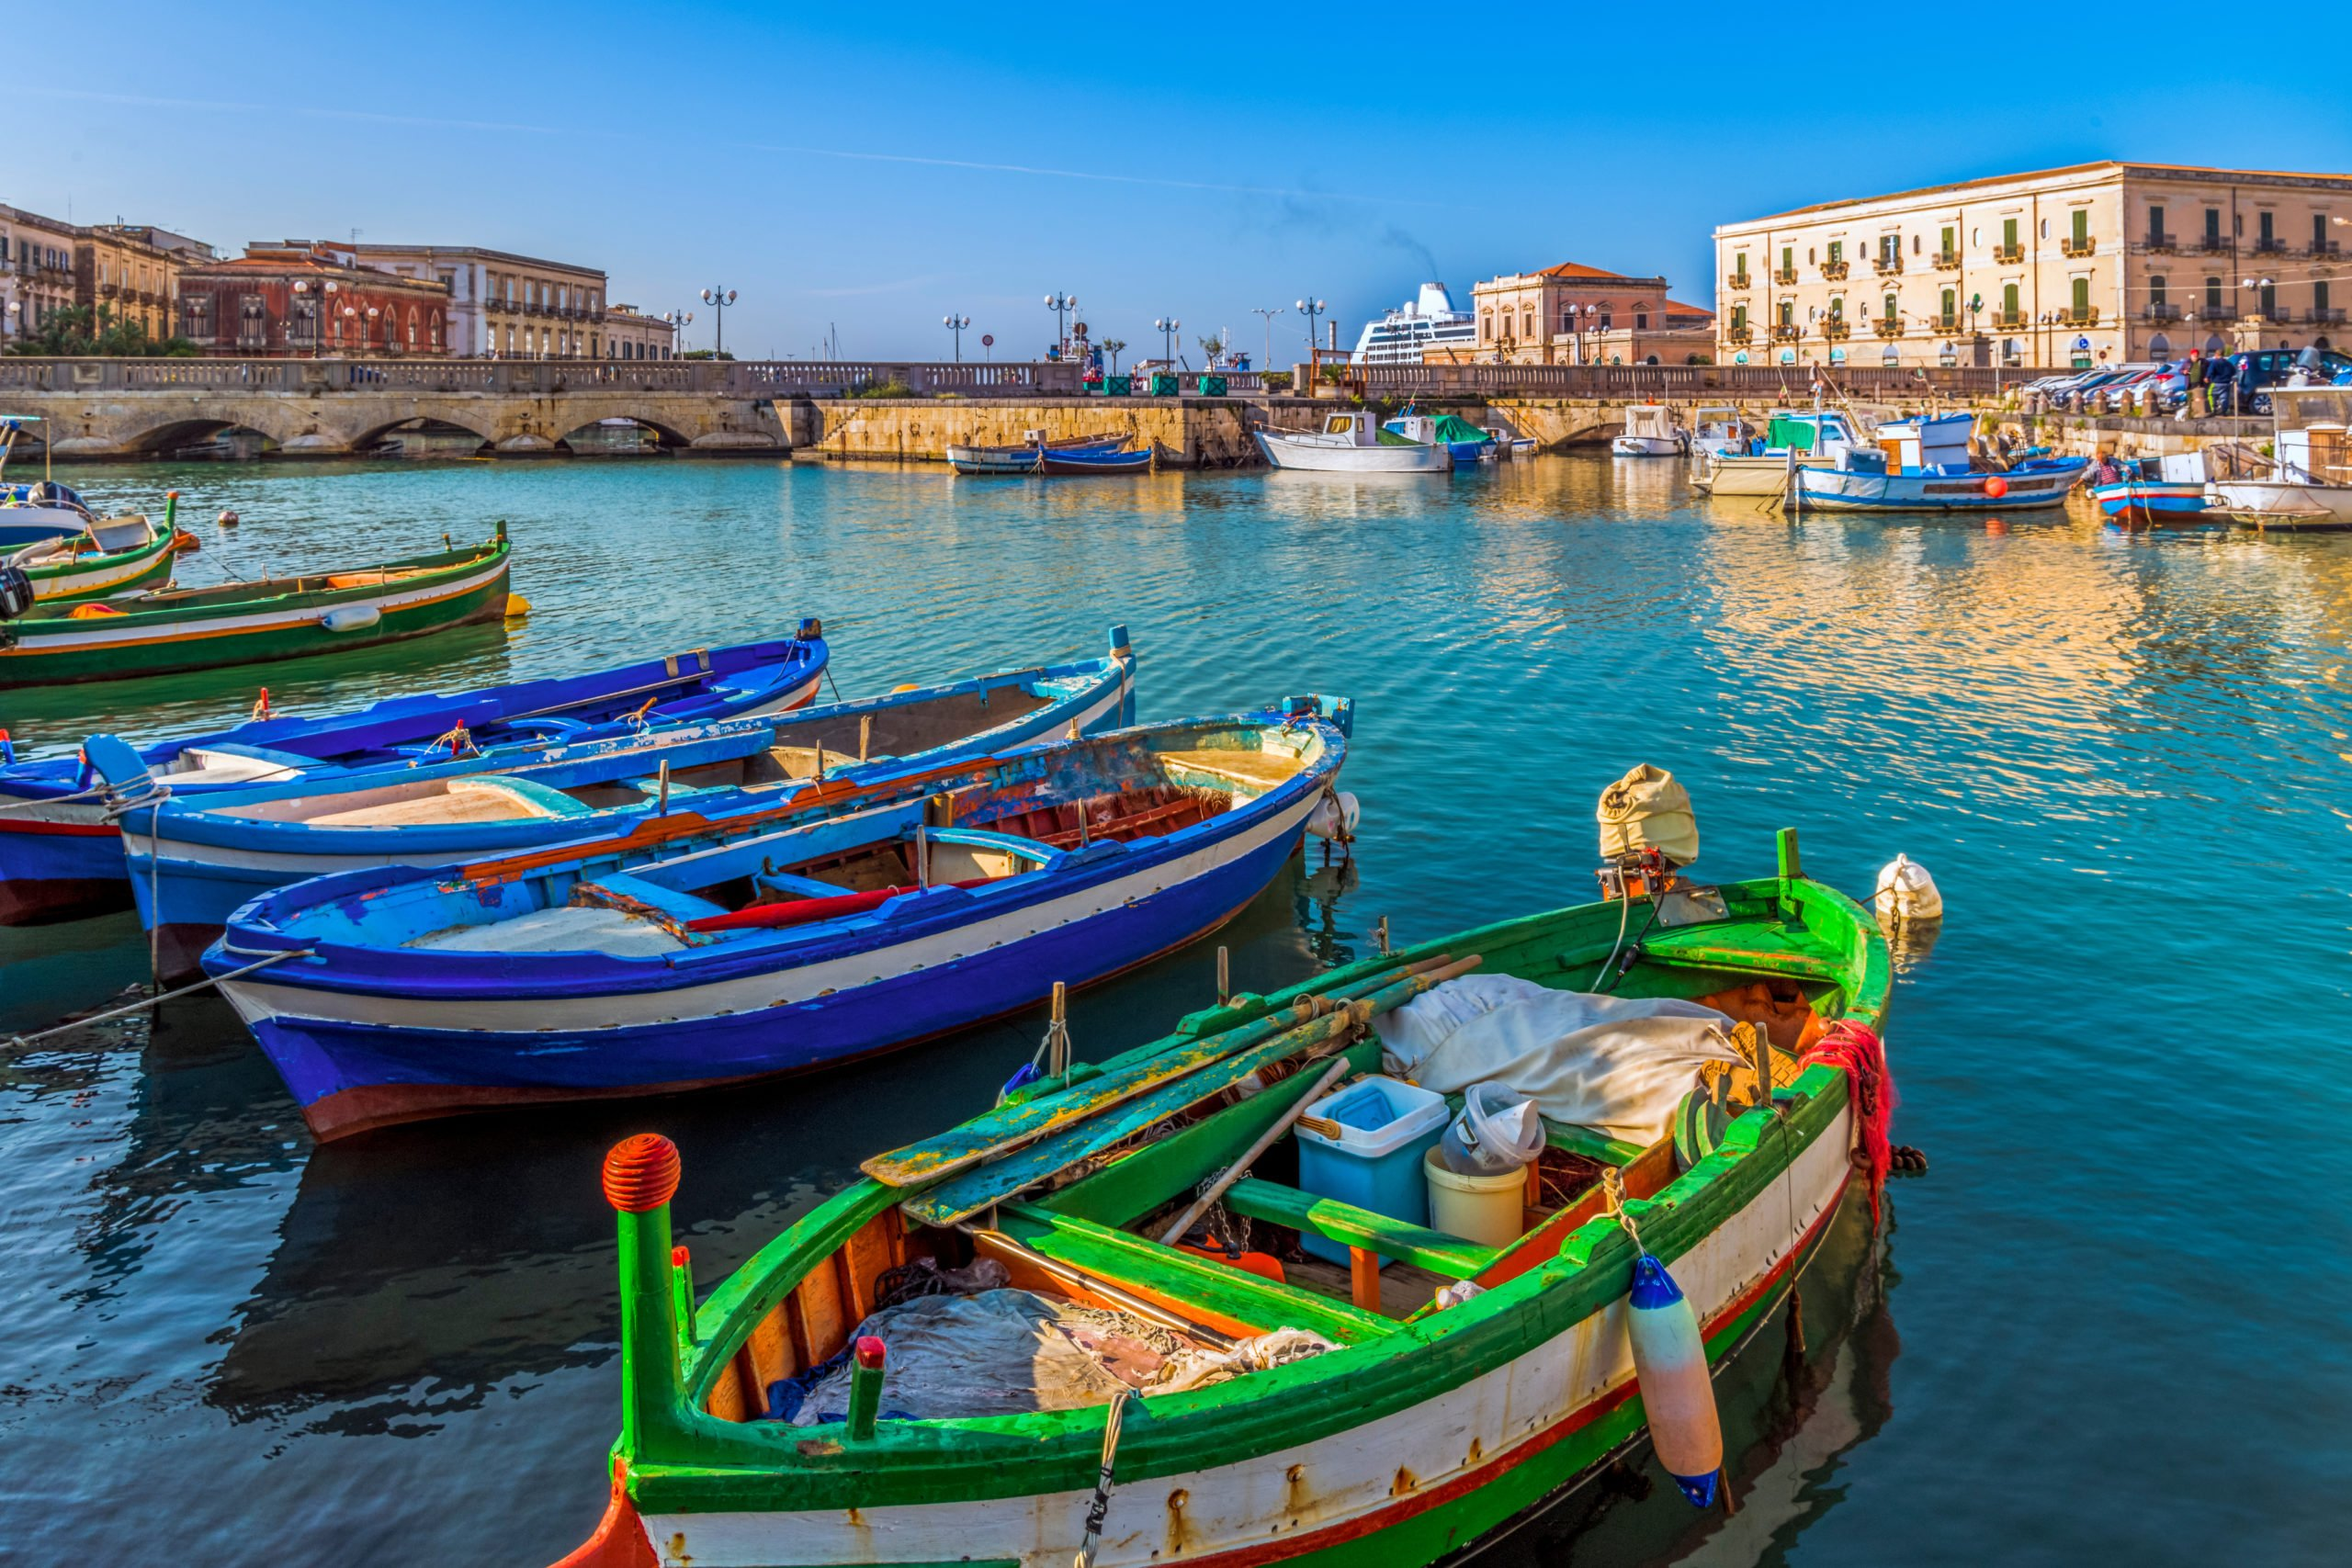 Visit The Ortigia Island , The Old City Of Syracuse On The Taste Of Sicily 8 Day Tour